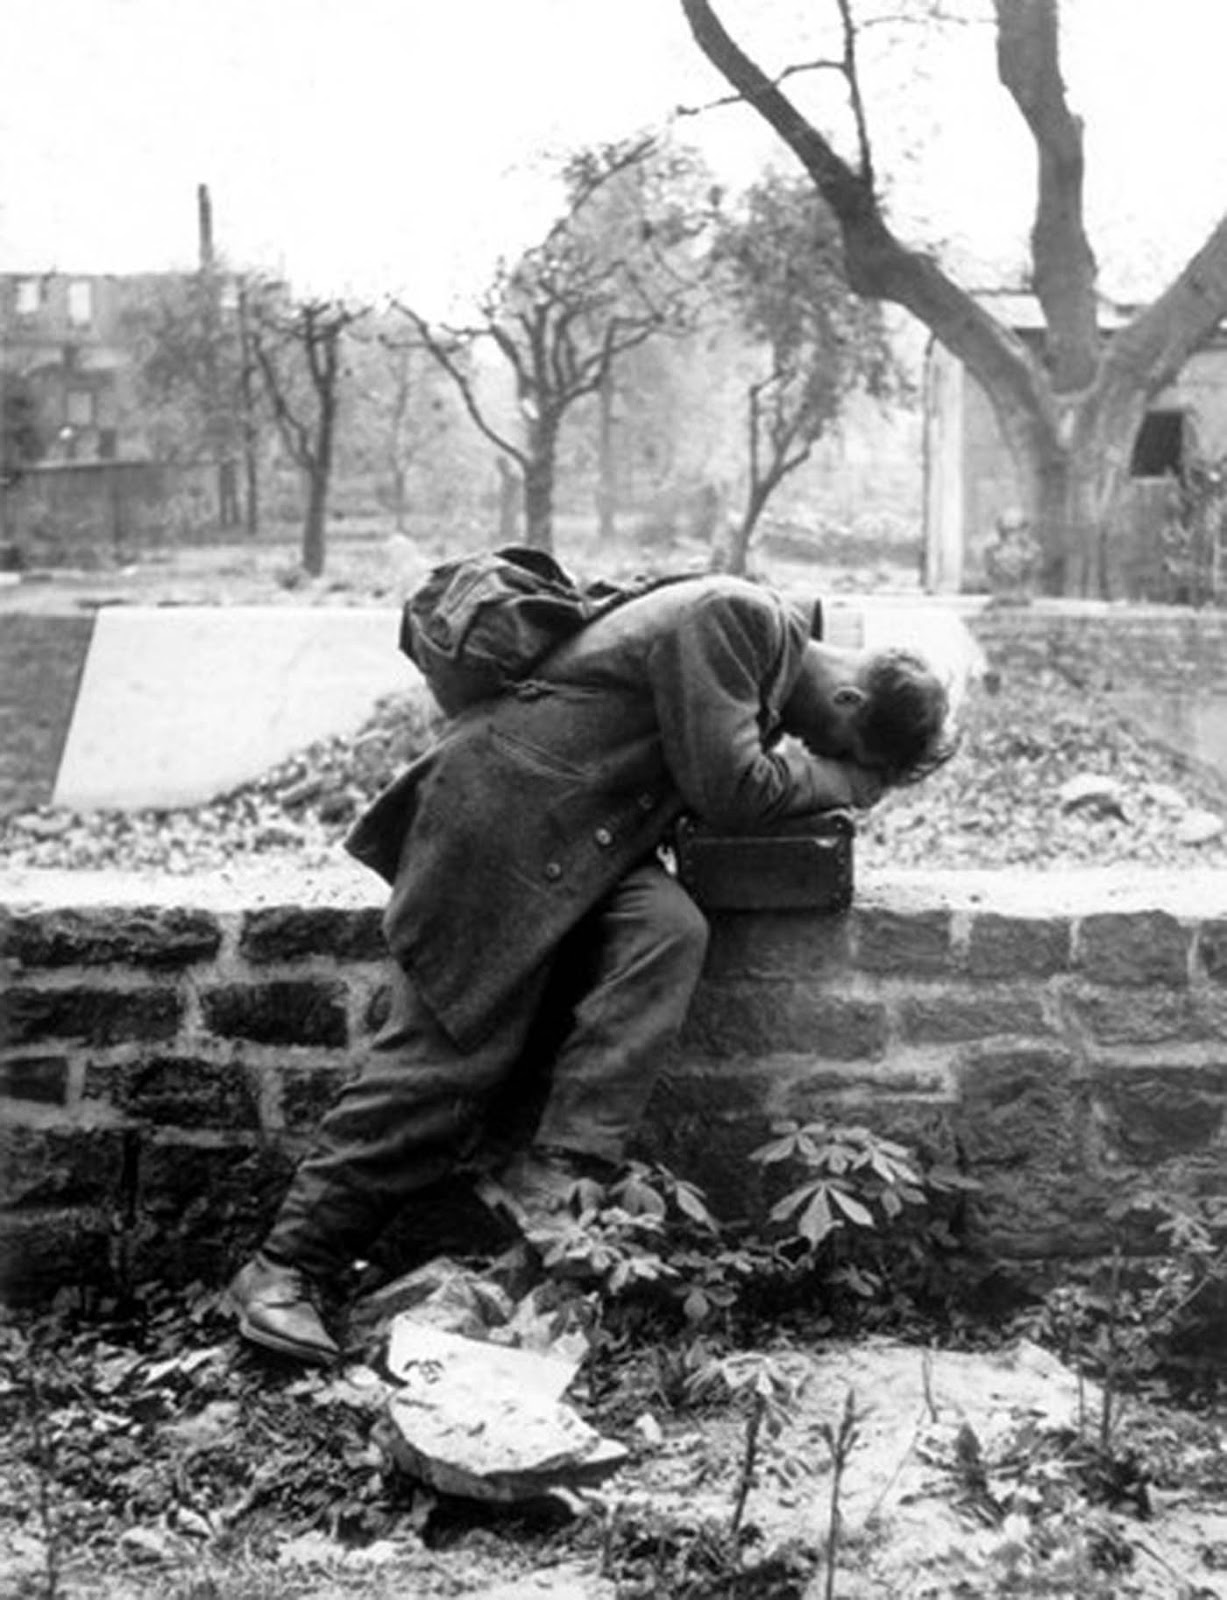 A German soldier returns home to Frankfurt am Main after the end of the War, 1946.